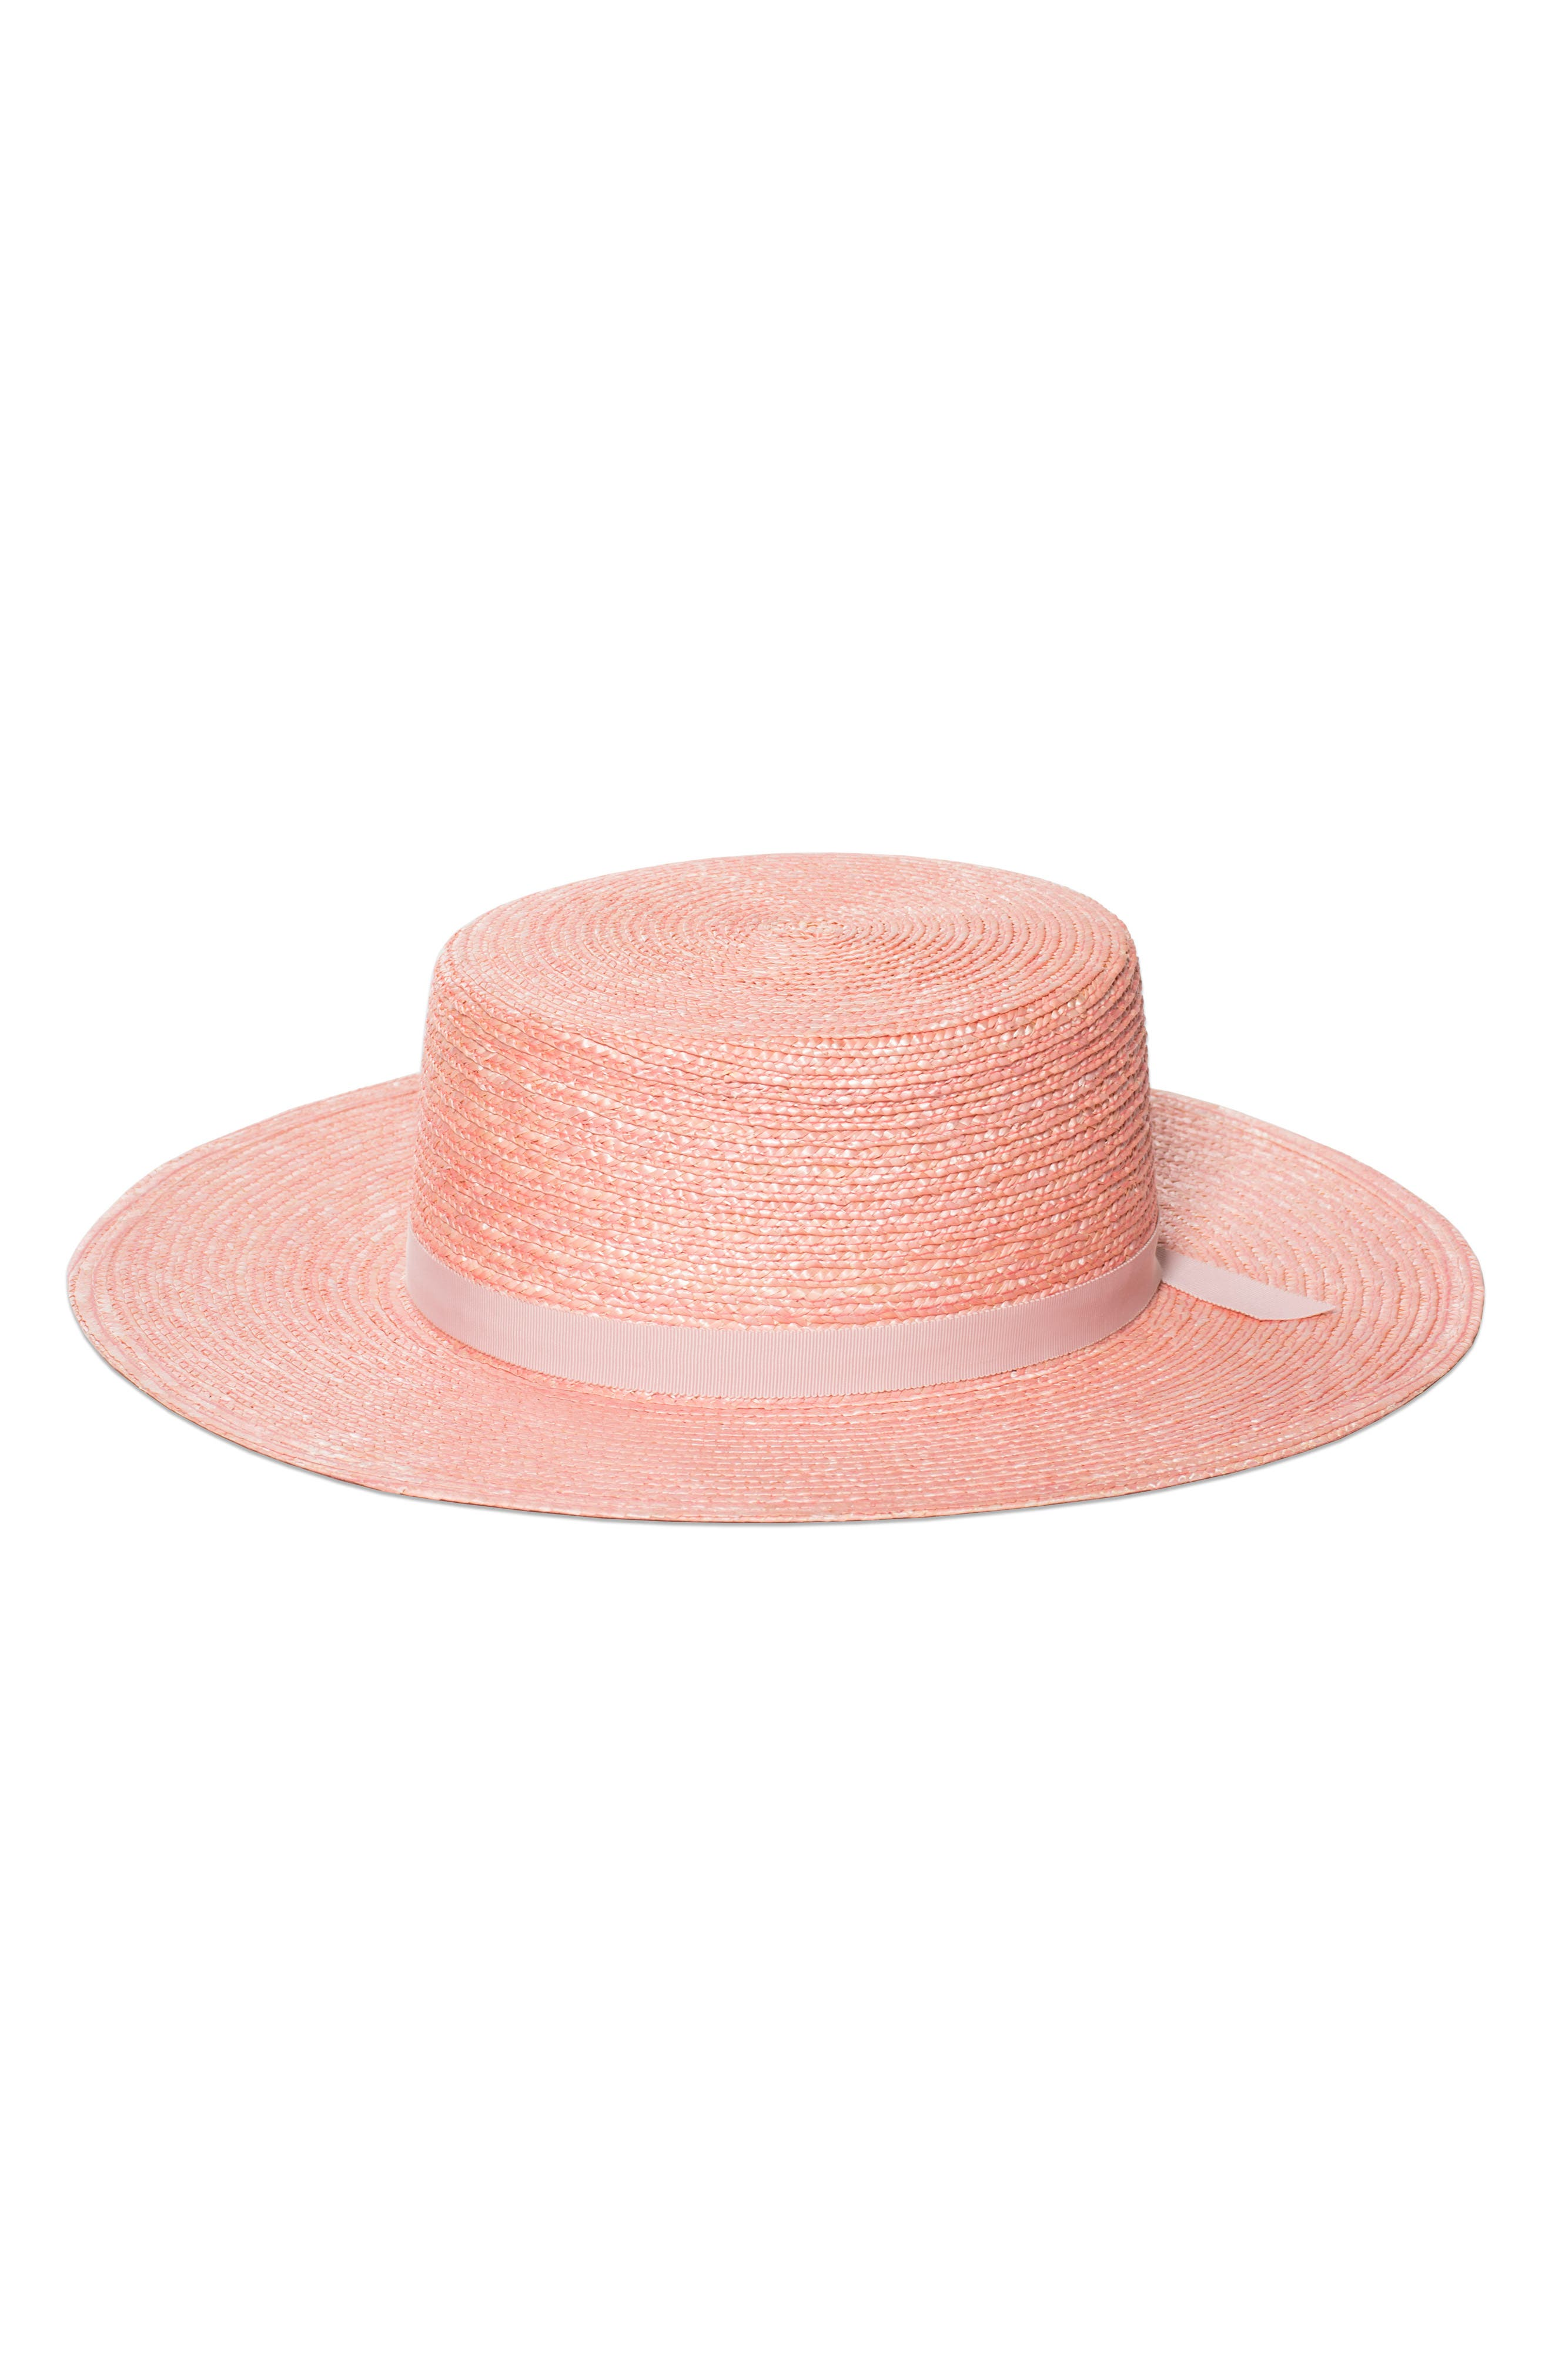 THE HIGHLAND STRAW BOATER HAT - PINK